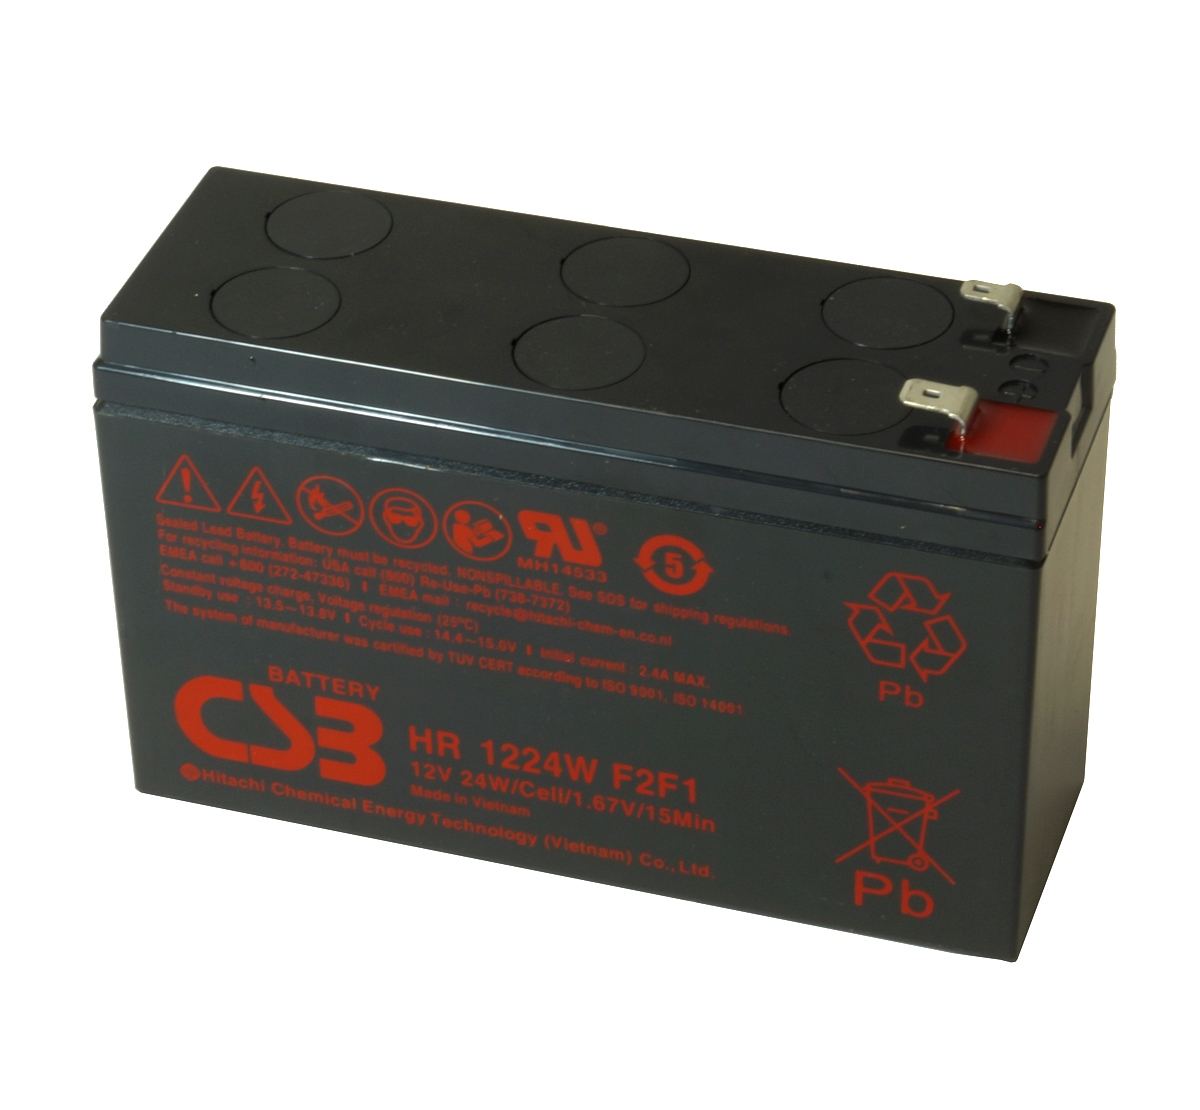 HR1224WF2F1 van CSB Battery